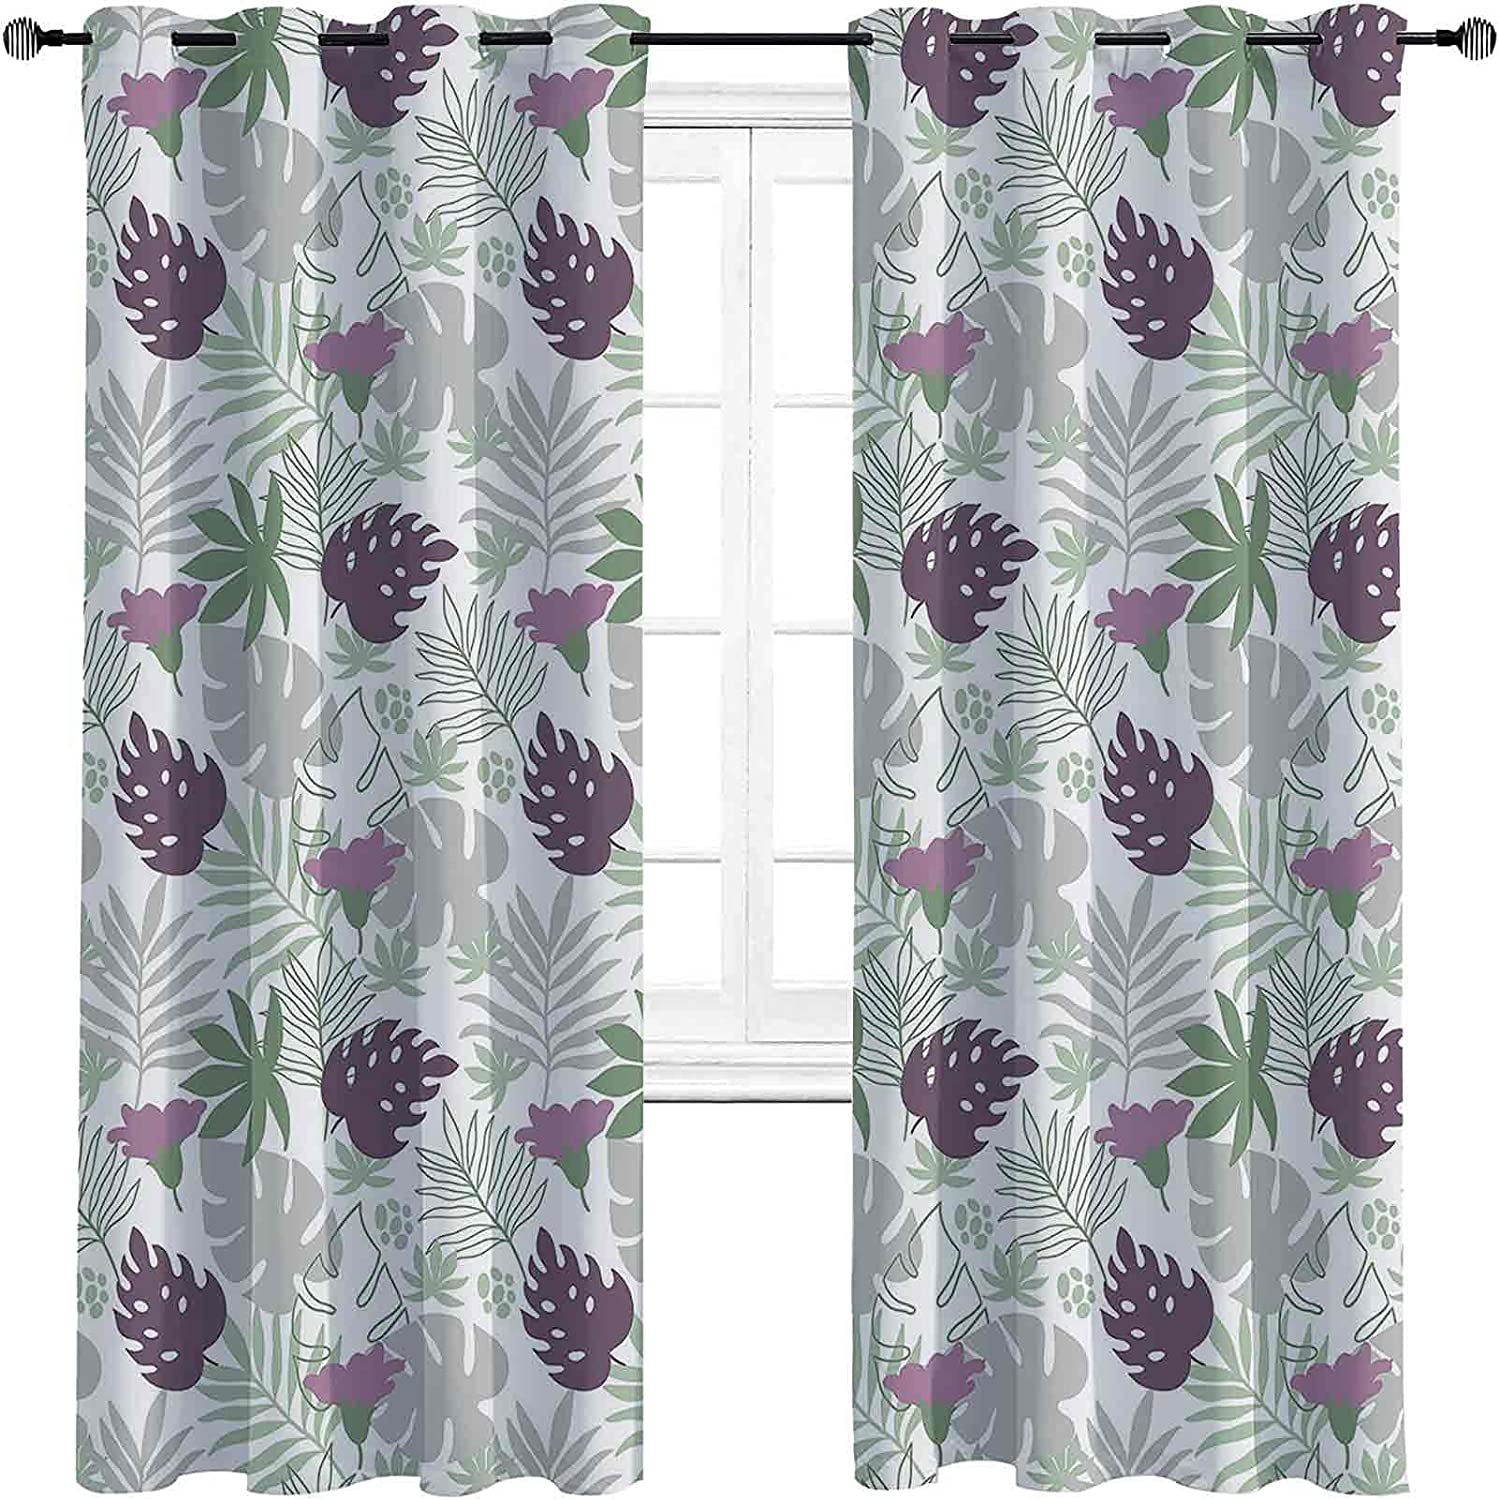 Leaves Shading Insulated Curtain Tropical Foliage Super beauty product restock quality top! E excellence Silhouettes